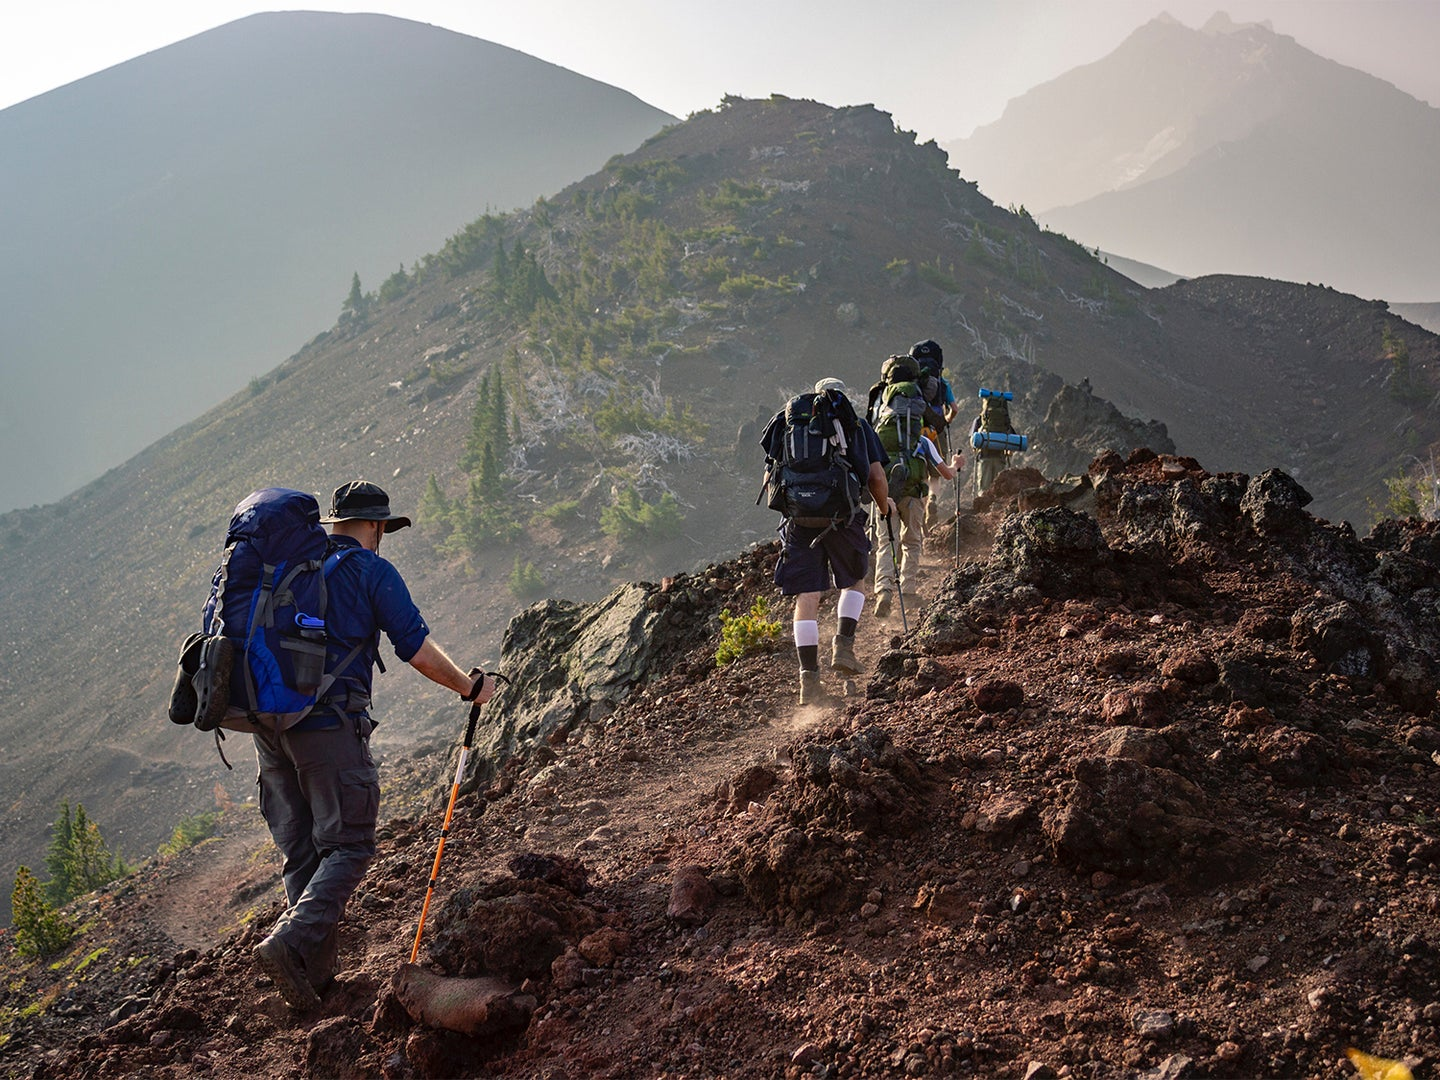 hikers going up a mountain.